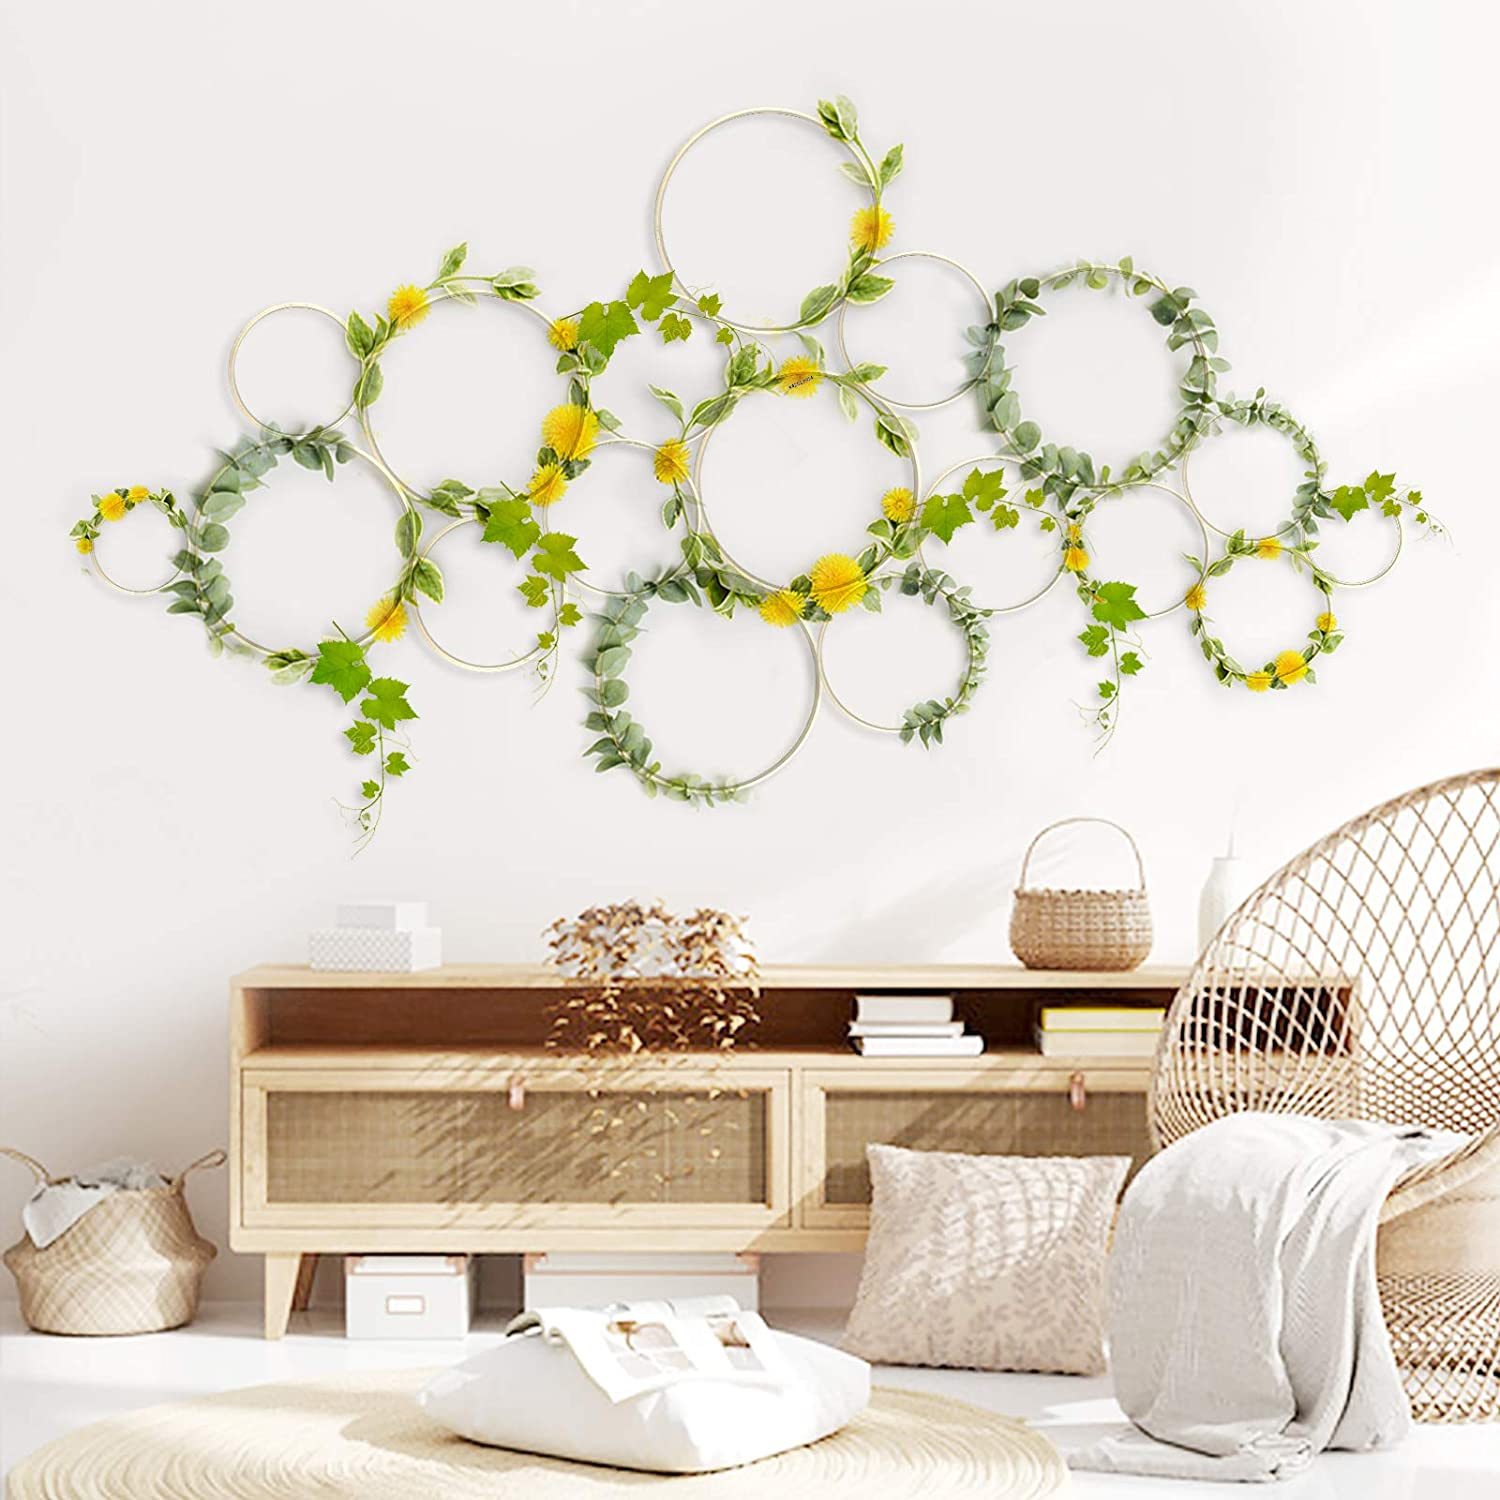 Sunlit Boho 18 PCS Bamboo Wall Trellis DIY Set, Plant Trellis, Vines Trellis, Display for Climbing Potted Plants, Rustic Vintage Home Garden Decor